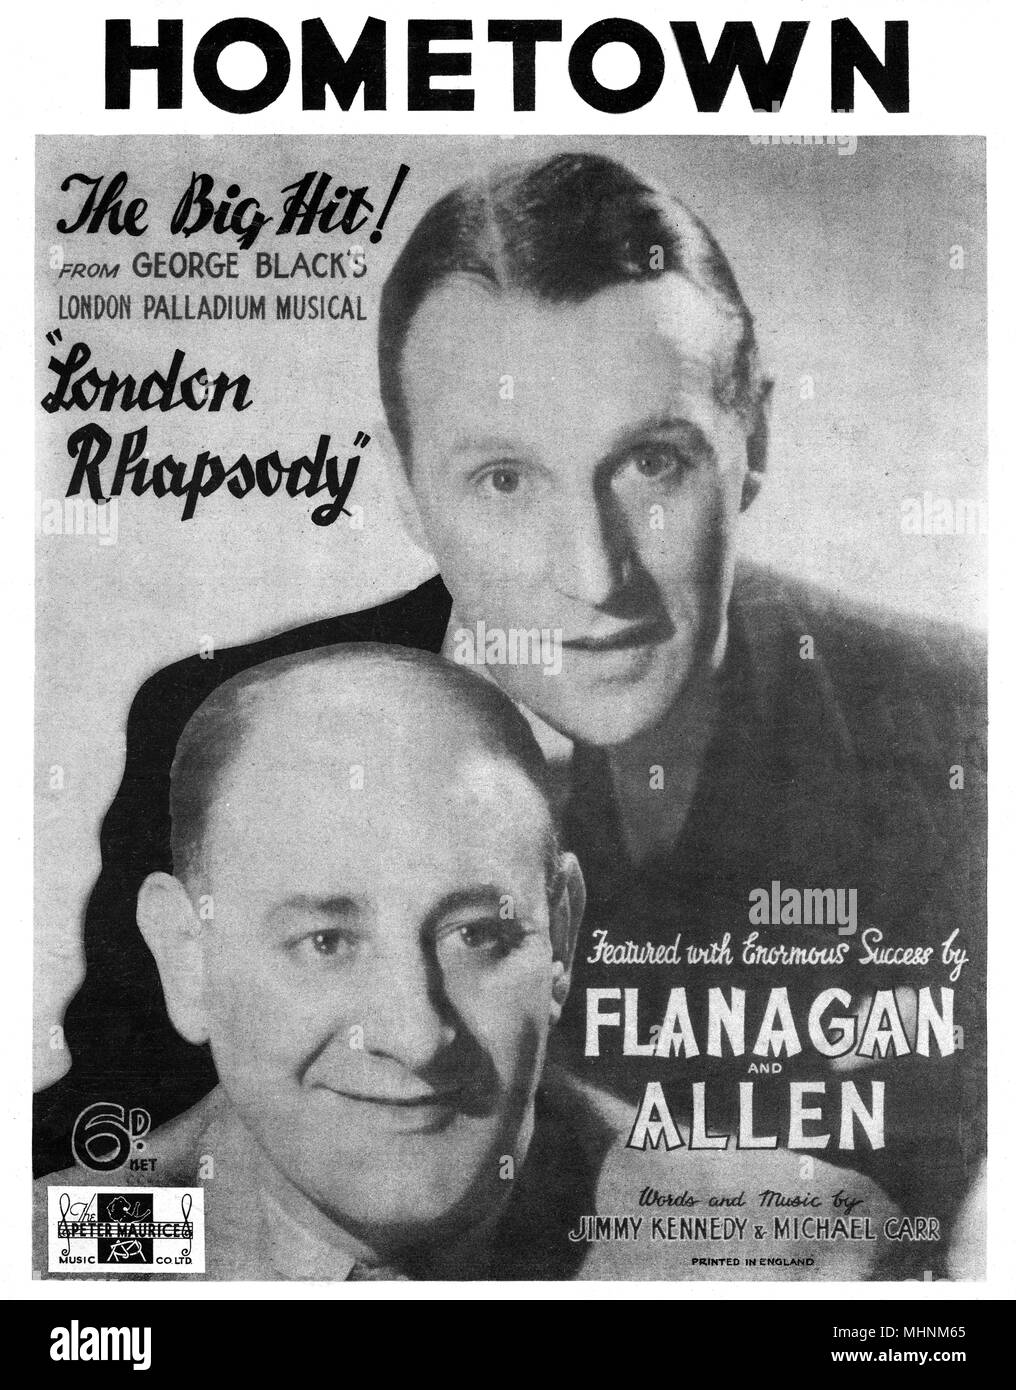 'Hometown' - Music Sheet Cover, 'The Big Hit' from George Black's London Palladium Musical 'London Rhapsody', featured with Enormous, success by Flanagan and Allen, words and music by Jimmy Kennedy and Michael Carr.     Date: circa 1937 - Stock Image